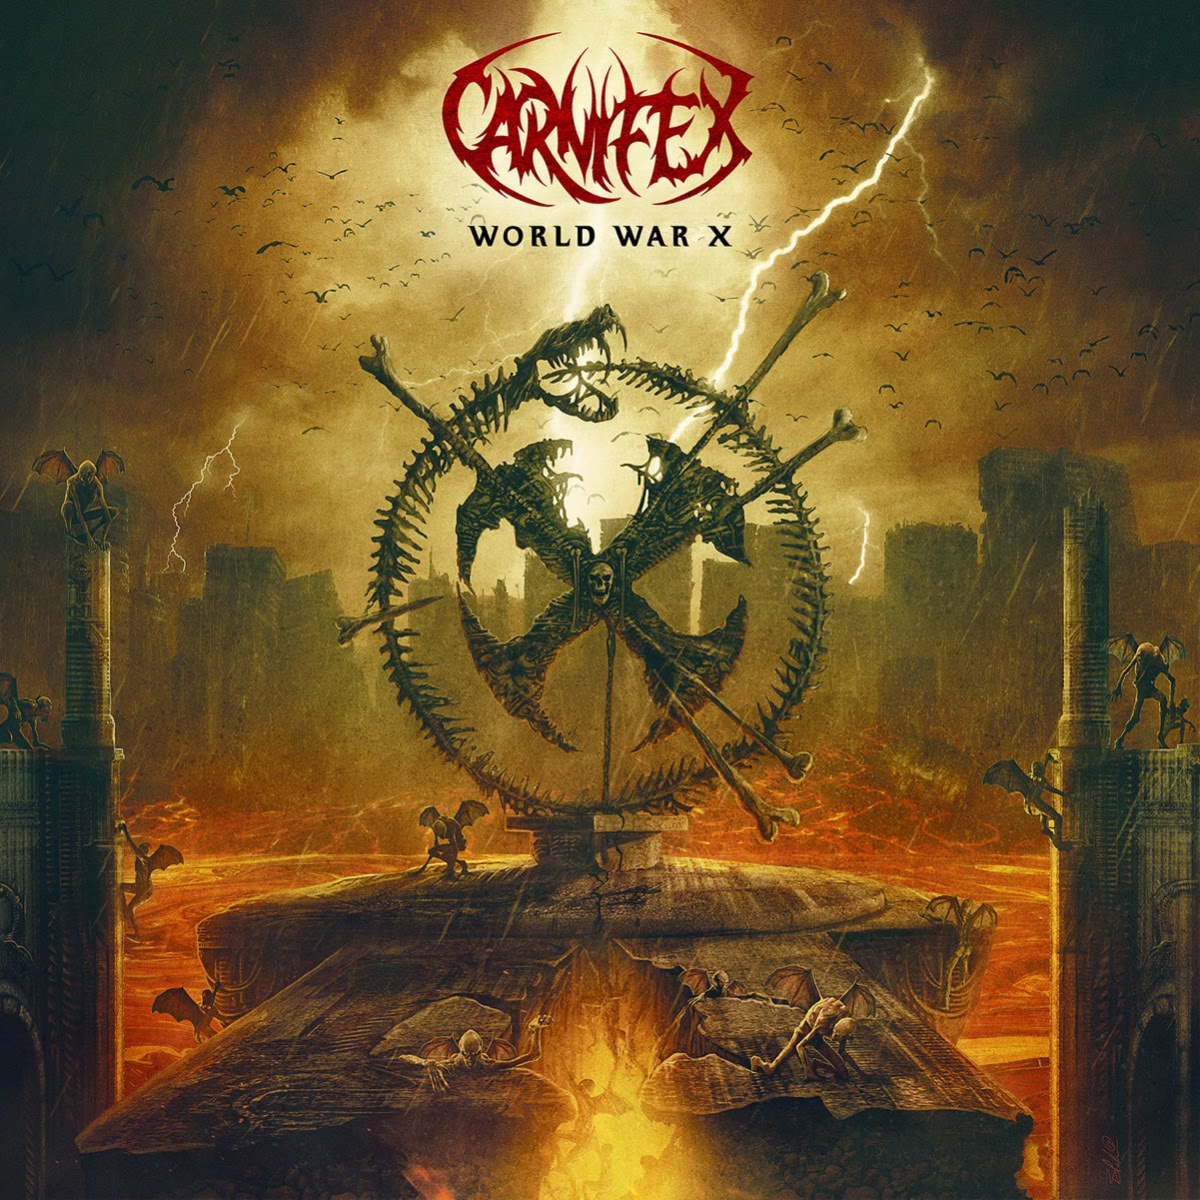 "San Diego, California-based metal outfit  CARNIFEX   are proud to announce their  7th studio album ,  World War X,   will be released on August 2nd via  Nuclear Blast . Today, the band releases the first single ,      "" No Light Shall Save Us "" featuring  Alissa White-Gluz (ARCH ENEMY),  with a music video directed by  Scott Hansen  ( POSSESSED ,  MOTIONLESS IN WHITE ,  DEICIDE, PRONG ) .   Watch the video for  ""No Light Shall Save Us""  featuring  Alissa White-Gluz  here :  www.youtube.com/watch?v=84Ru-BnBL74     CARNIFEX's  frontman  Scott Ian Lewis  comments, "" Collaborating with Alissa on '   No Light Shall Save Us   ' was a joy from the start. Alissa was able to elevate the song with a dynamic that's completely new for   CARNIFEX.    There is a melody and depth on '   No Light Shall Save Us   ' unlike any previous    CARNIFEX   song. It's the perfect start to your journey through    World War X   . ""    ""With '   No Light Shall Save Us   ' I think    CARNIFEX    and I have been able to create a really special piece, "" comments  Alissa White-Gluz .  ""The video shoot was an incredible experience and from the second I read the lyrics and heard Scott's vision for the song I knew I could really build on it and express myself. I'm excited to share this with the world!""   Pre-order   World War X   here:  http://www.nuclearblast.com/carnifex-wwx  Pre-save the album on Spotify, Deezer & Apple Music:  http://nblast.de/CarnifexPreSave    World War X  was produced by  CARNIFEX  and  Jason Suecof  ( DEATH ANGEL ,  CHELSEA GRIN ,  JOB FOR A COWBOY ). The album was recorded and mixed   by Jason at  AudioHammer Studio  in Sanford, Florida. Vocals for the album were tracked by  Mick Kenney  ( ANAAL NATHRAKH ,  BLEEDING THROUGH ) at  The Barracks Studio  in Huntington Beach, CA. The album artwork was created by Blake Armstrong.     World War X   Track Listing:  World War X  Visions Of The End  This Infernal Darkness  Eyes Of The Executioner  No Light Shall Save Us featuring Alissa White-Gluz  All Roads Lead To Hell featuring Angel Vivaldi  Brushed By The Wings Of Demons  Hail Hellfire  By Shadows Thine Held   CARNIFEX  is supporting     World War X   on the road as a headliner on this year's highly anticipated Summer Slaughter  tour. The line-up includes  THE FACELESS .  RIVERS OF NIHIL , NEKROGOBLIKON , and  BRAND OF SACRIFICE ."